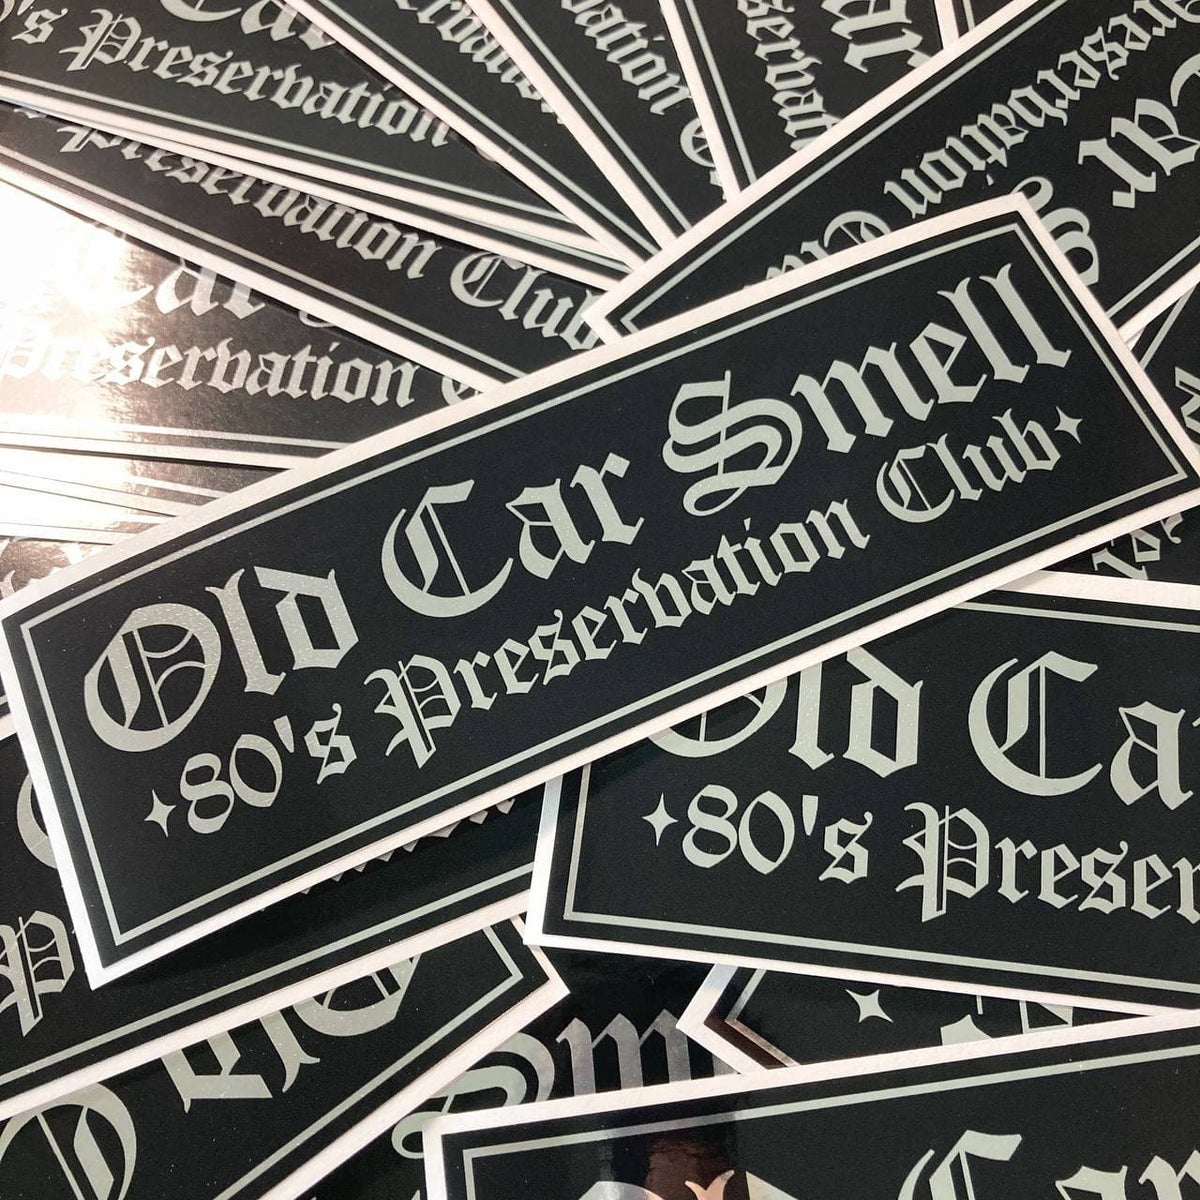 Image of Old Car Smell - 80's Preservation Club